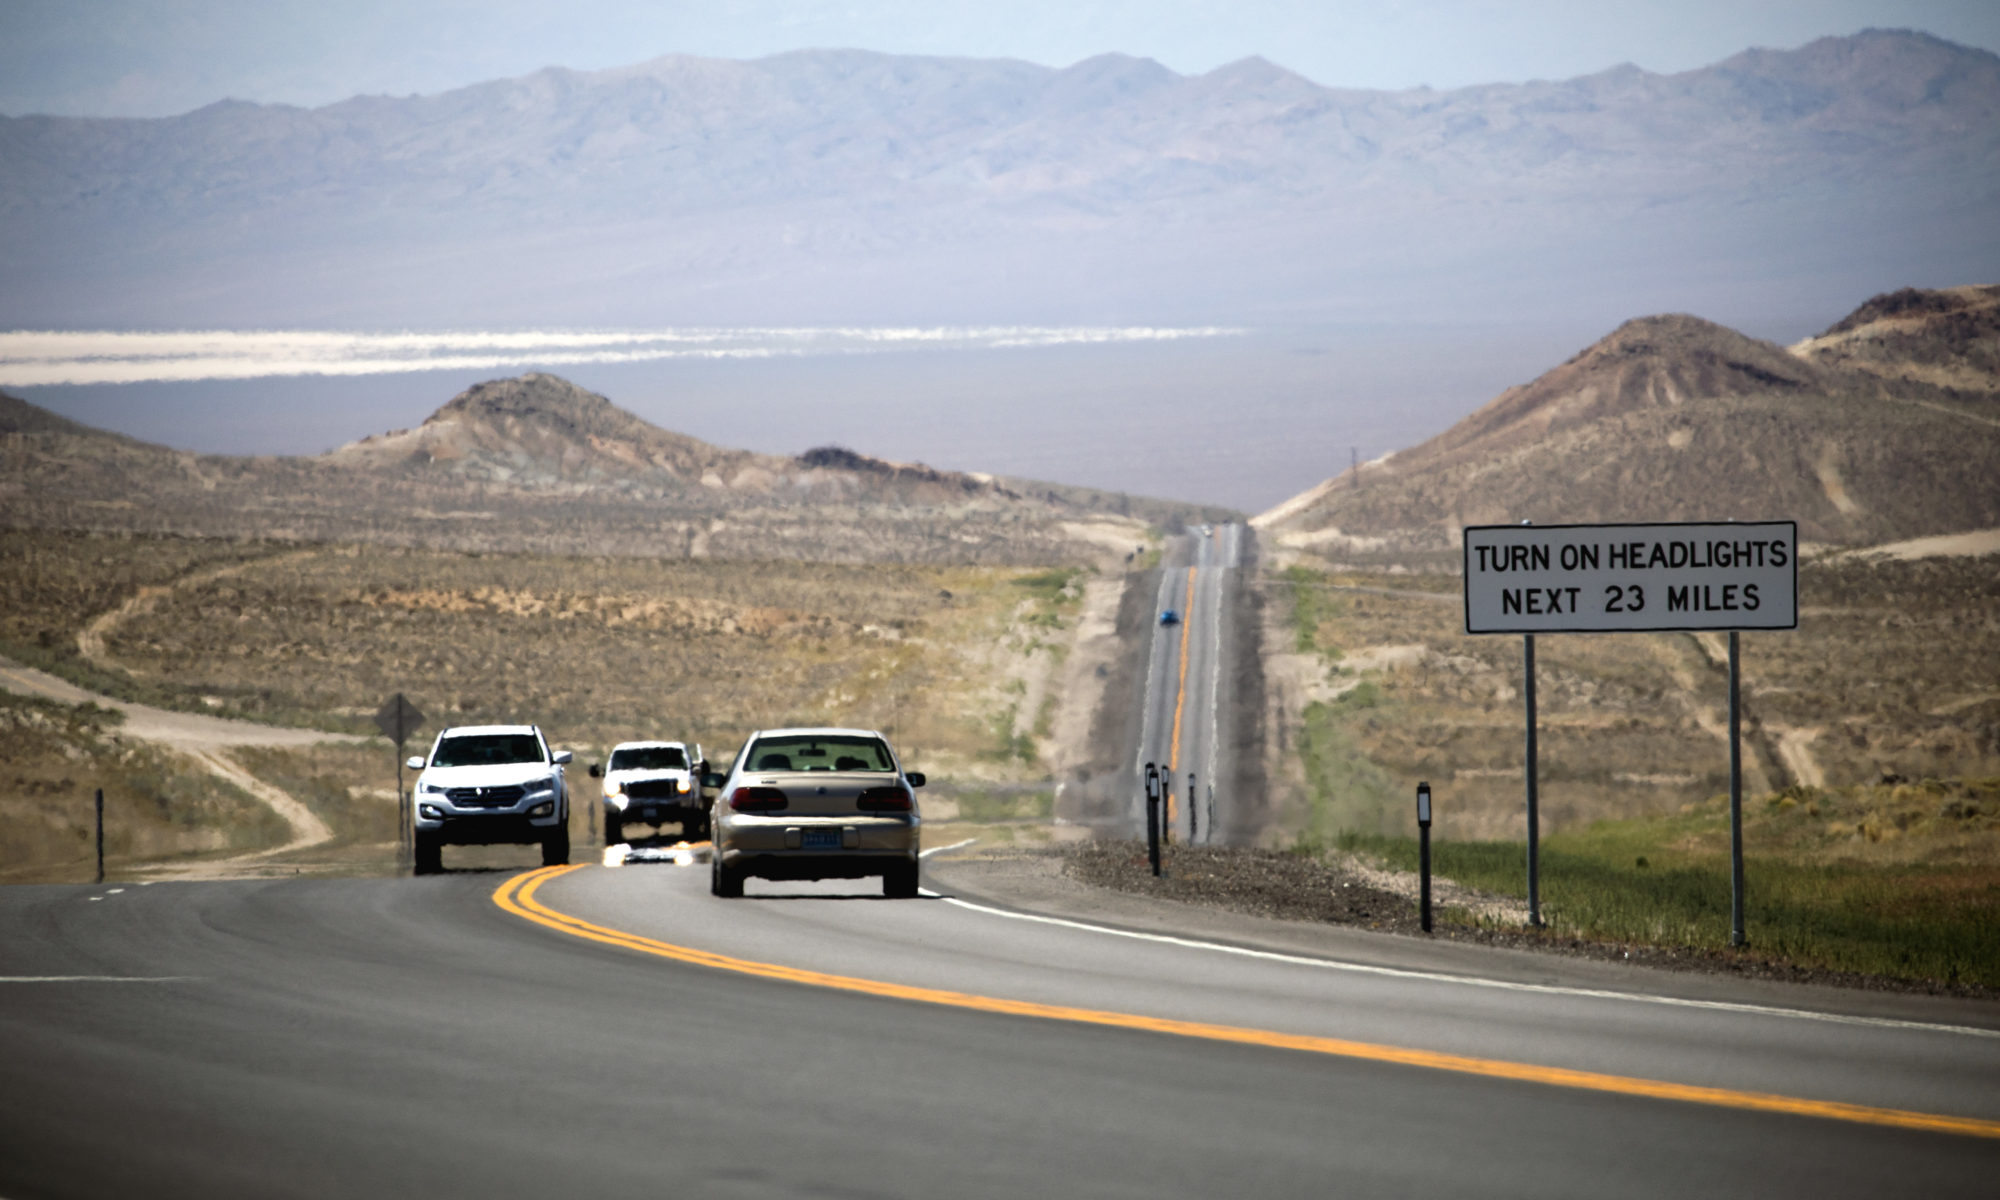 Vehicles on U.S. 95 south of Tonopah